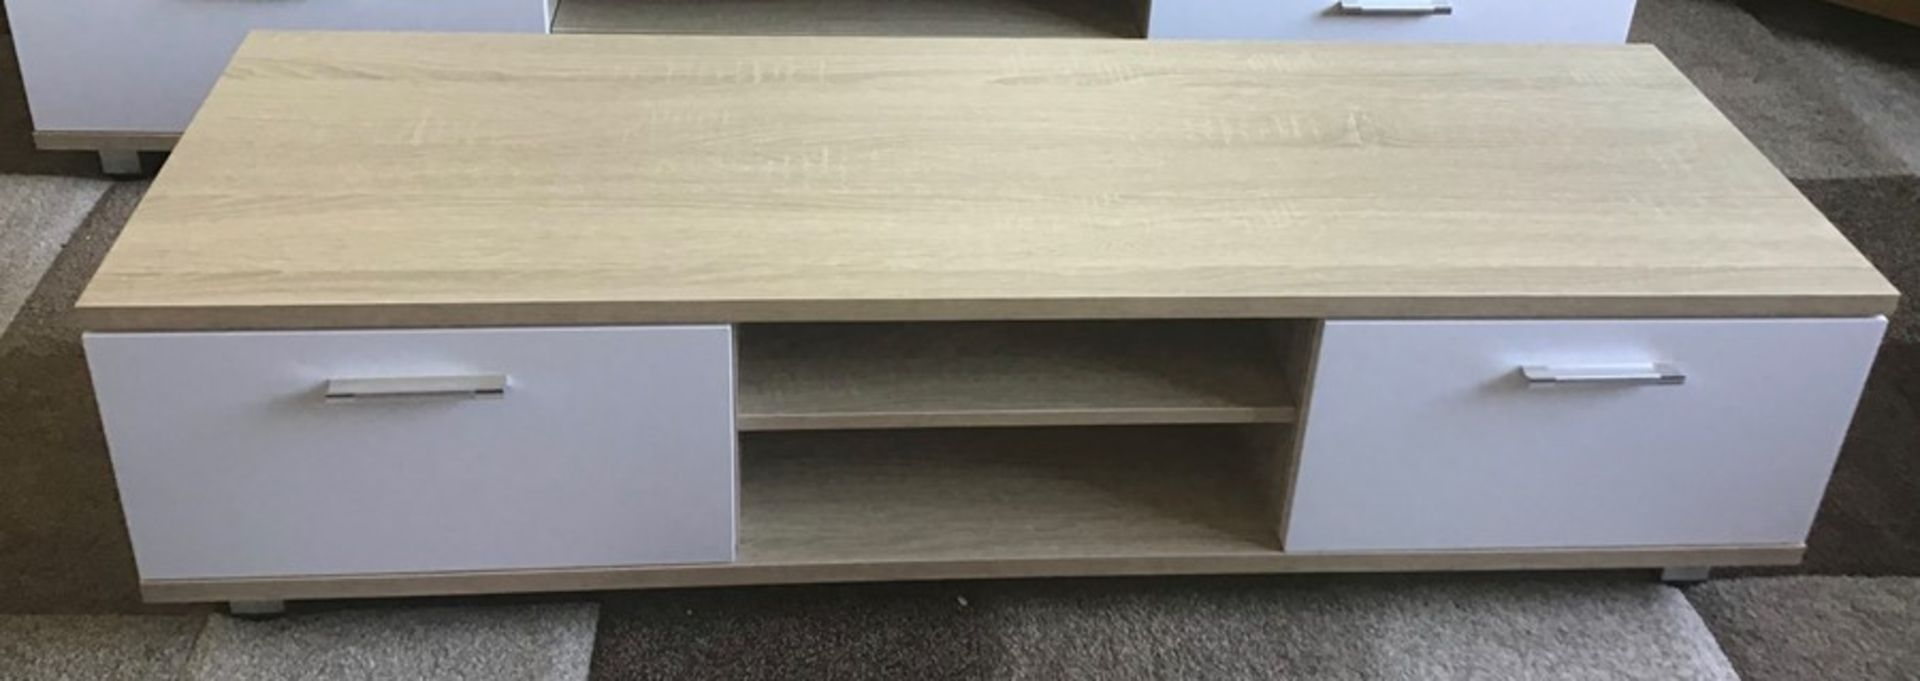 Oak and white 128cm TV stand, brand new, flat packed and boxed. RRP Circa £100.00 |1x Box - Image 3 of 3